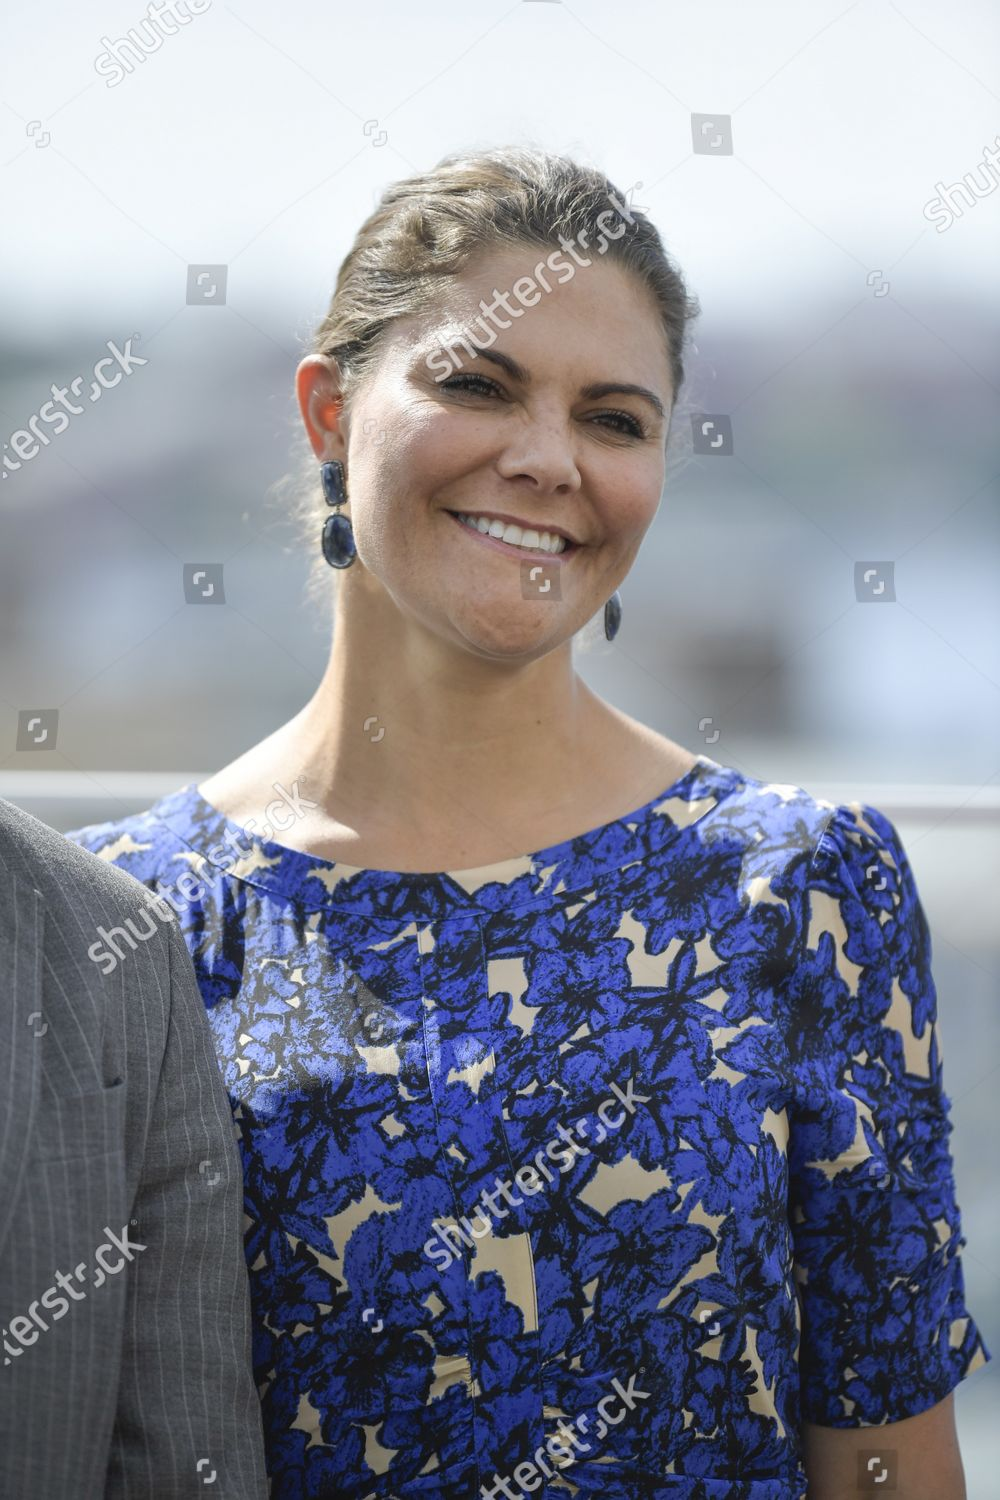 prince-daniel-and-crown-princess-victoria-at-visita-stockholm-sweden-shutterstock-editorial-10750019f.jpg